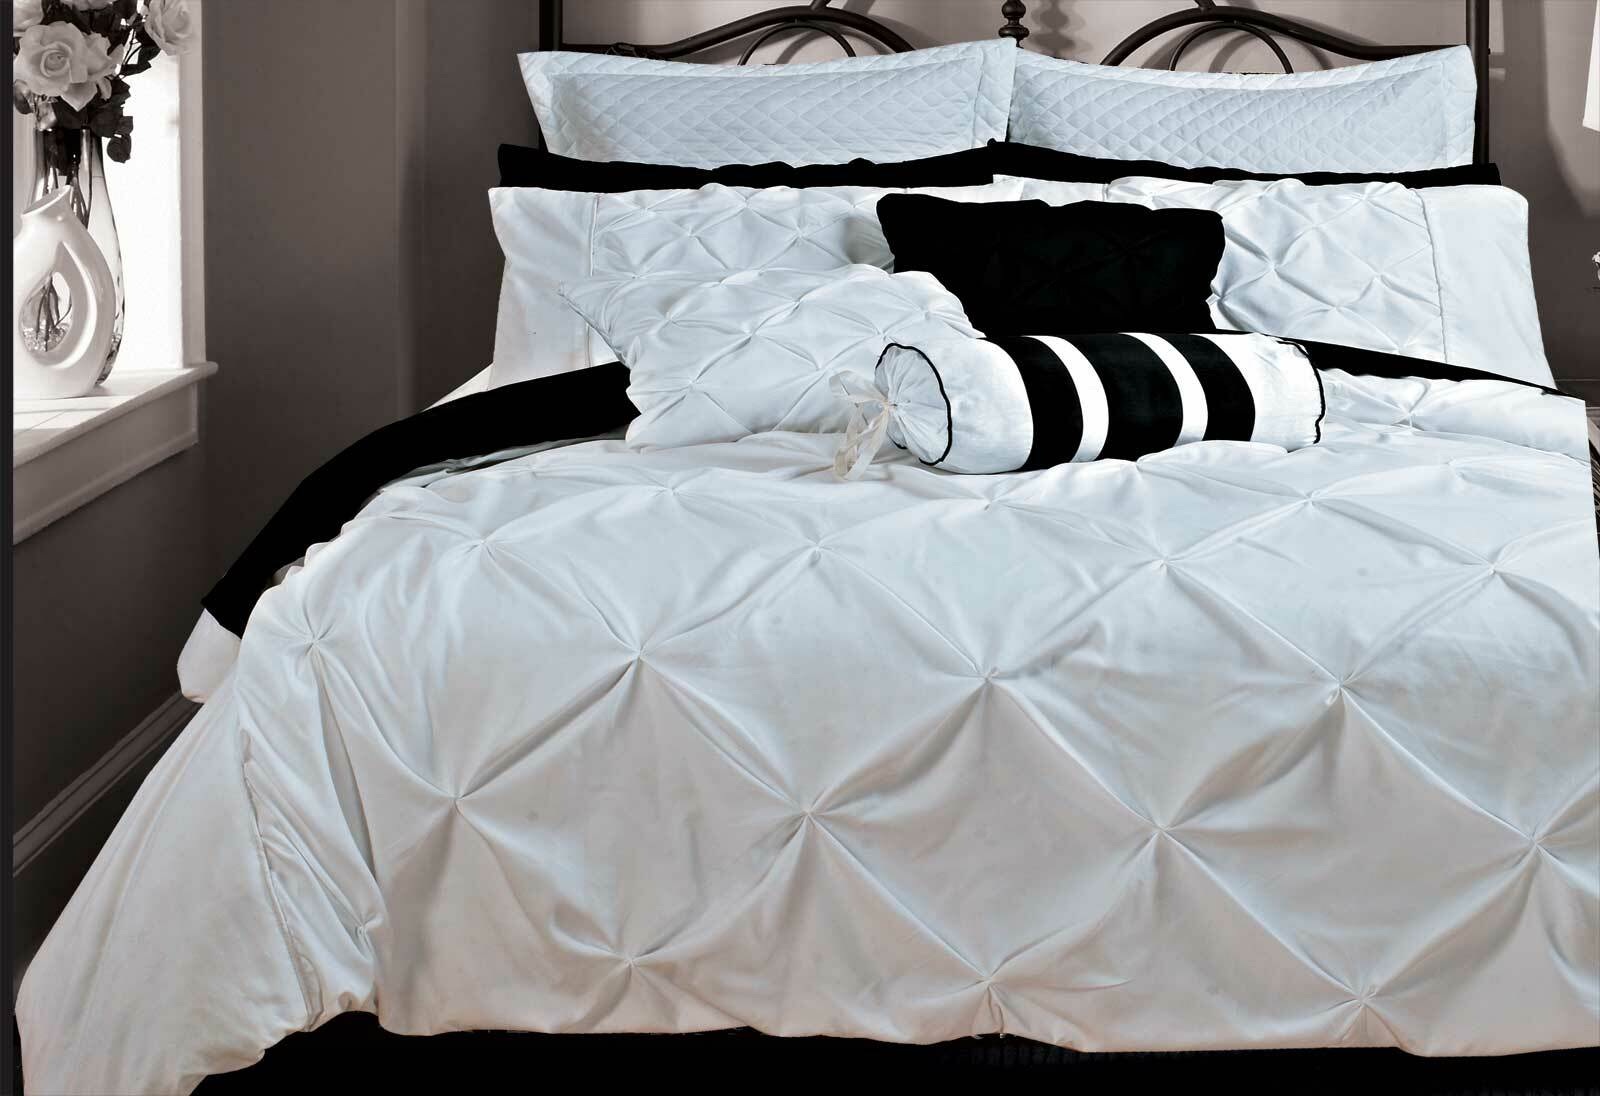 of tufted duvets ideas rug laura comforter duvet decoration king sets full sizes savannah and covers cover headboard discount queen blue for black size beautiful ashley white headboards with bedroom doona